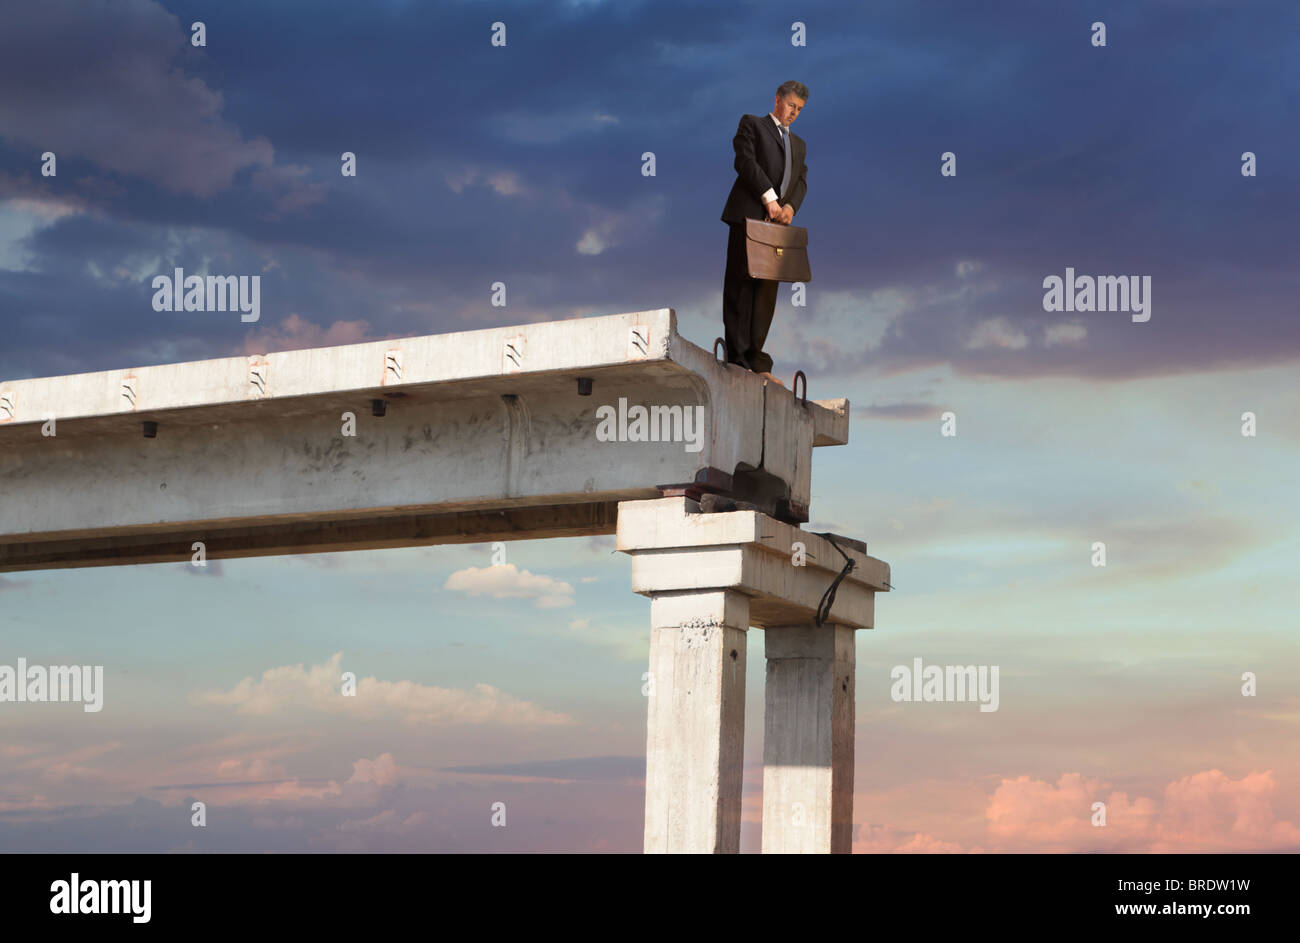 Financial crisis. Business concept - Stock Image